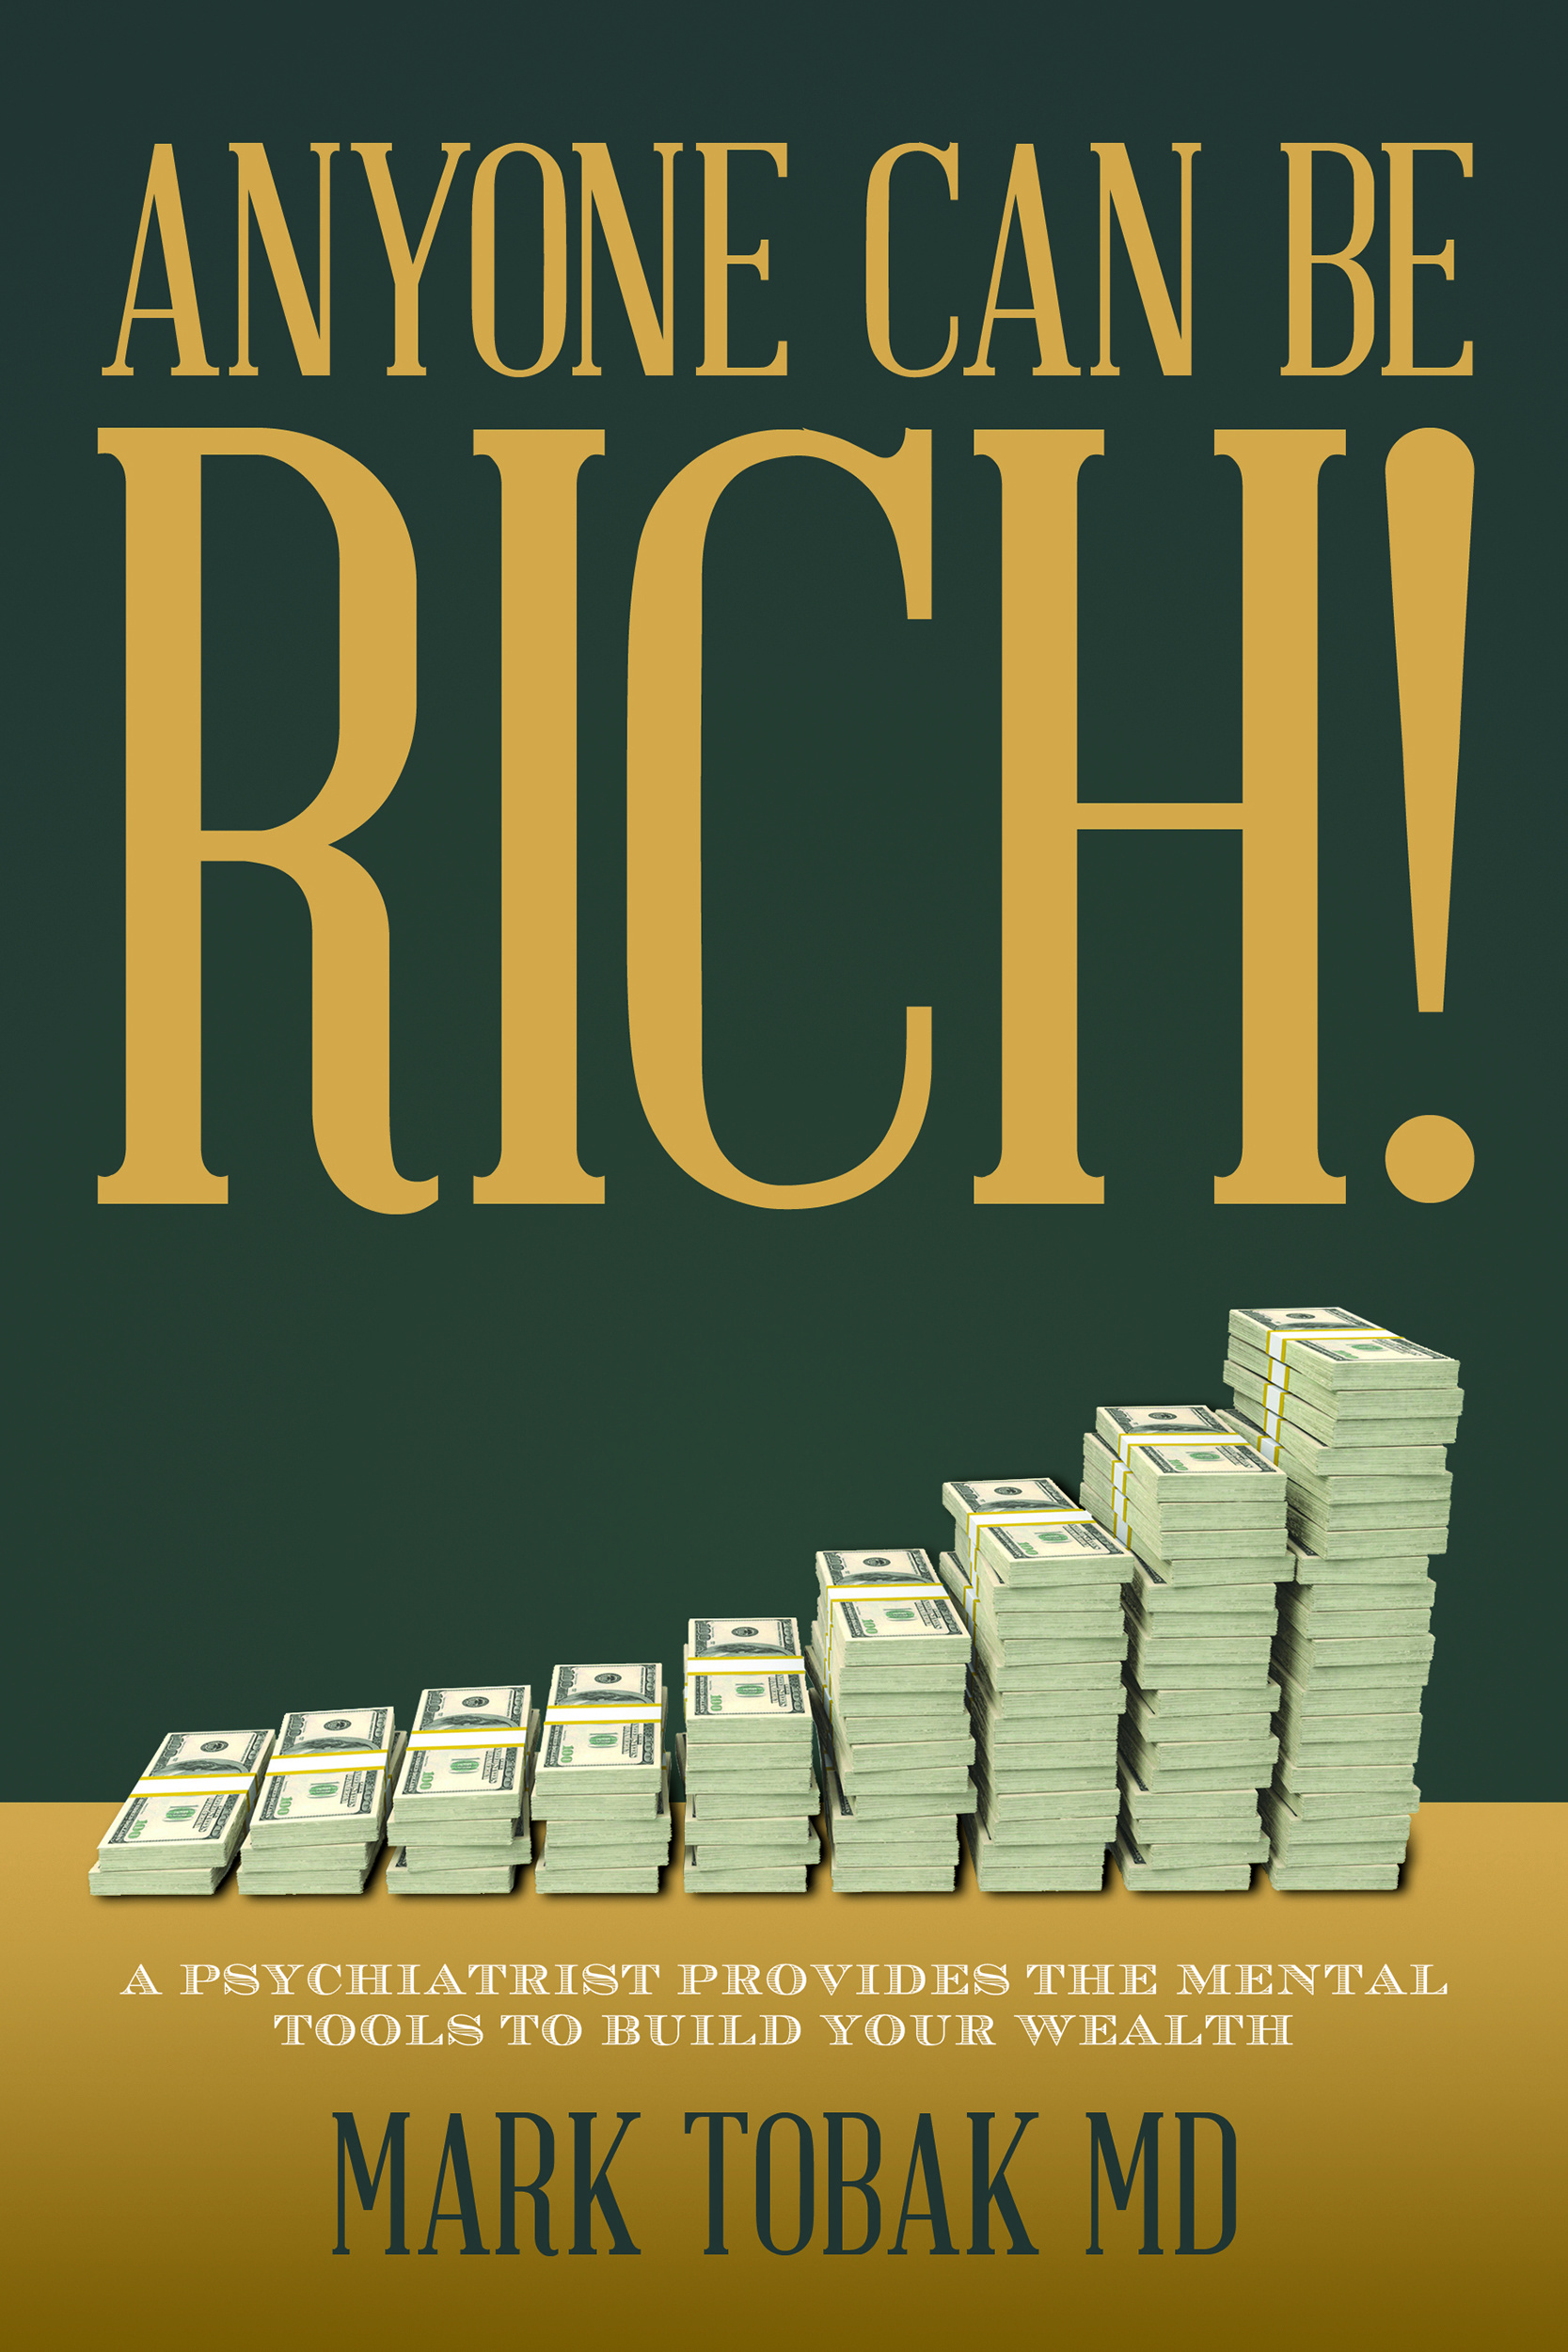 A Psychiatrist's Take: Why We Can't Get Rich - 4 Steps to Overcome Fear of Loss & Start Making Money